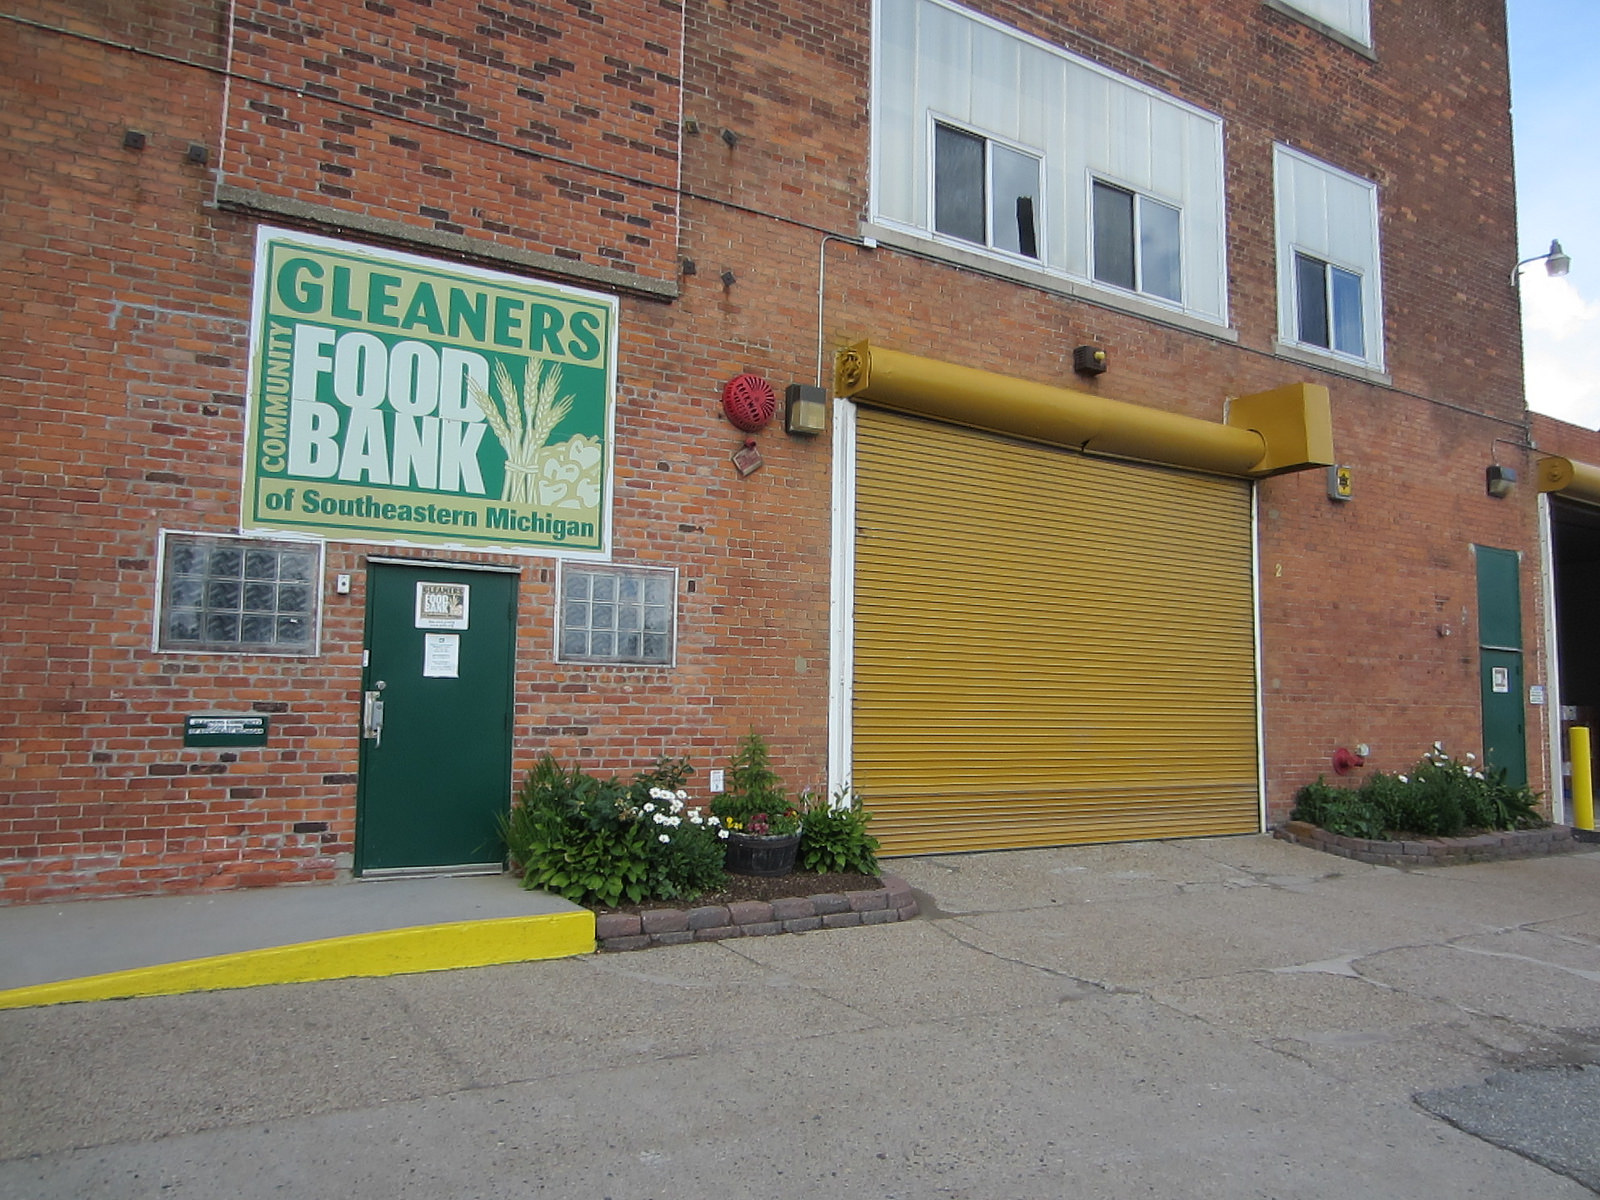 Gleaners Community Food Bank | Contextual Inquiry - A team of my peers and myself conducted a contextual inquiry for Gleaners Community Food Bank, a large food bank in Southeast Michigan in order to understand how to grow and sustain use of their online inventory system.